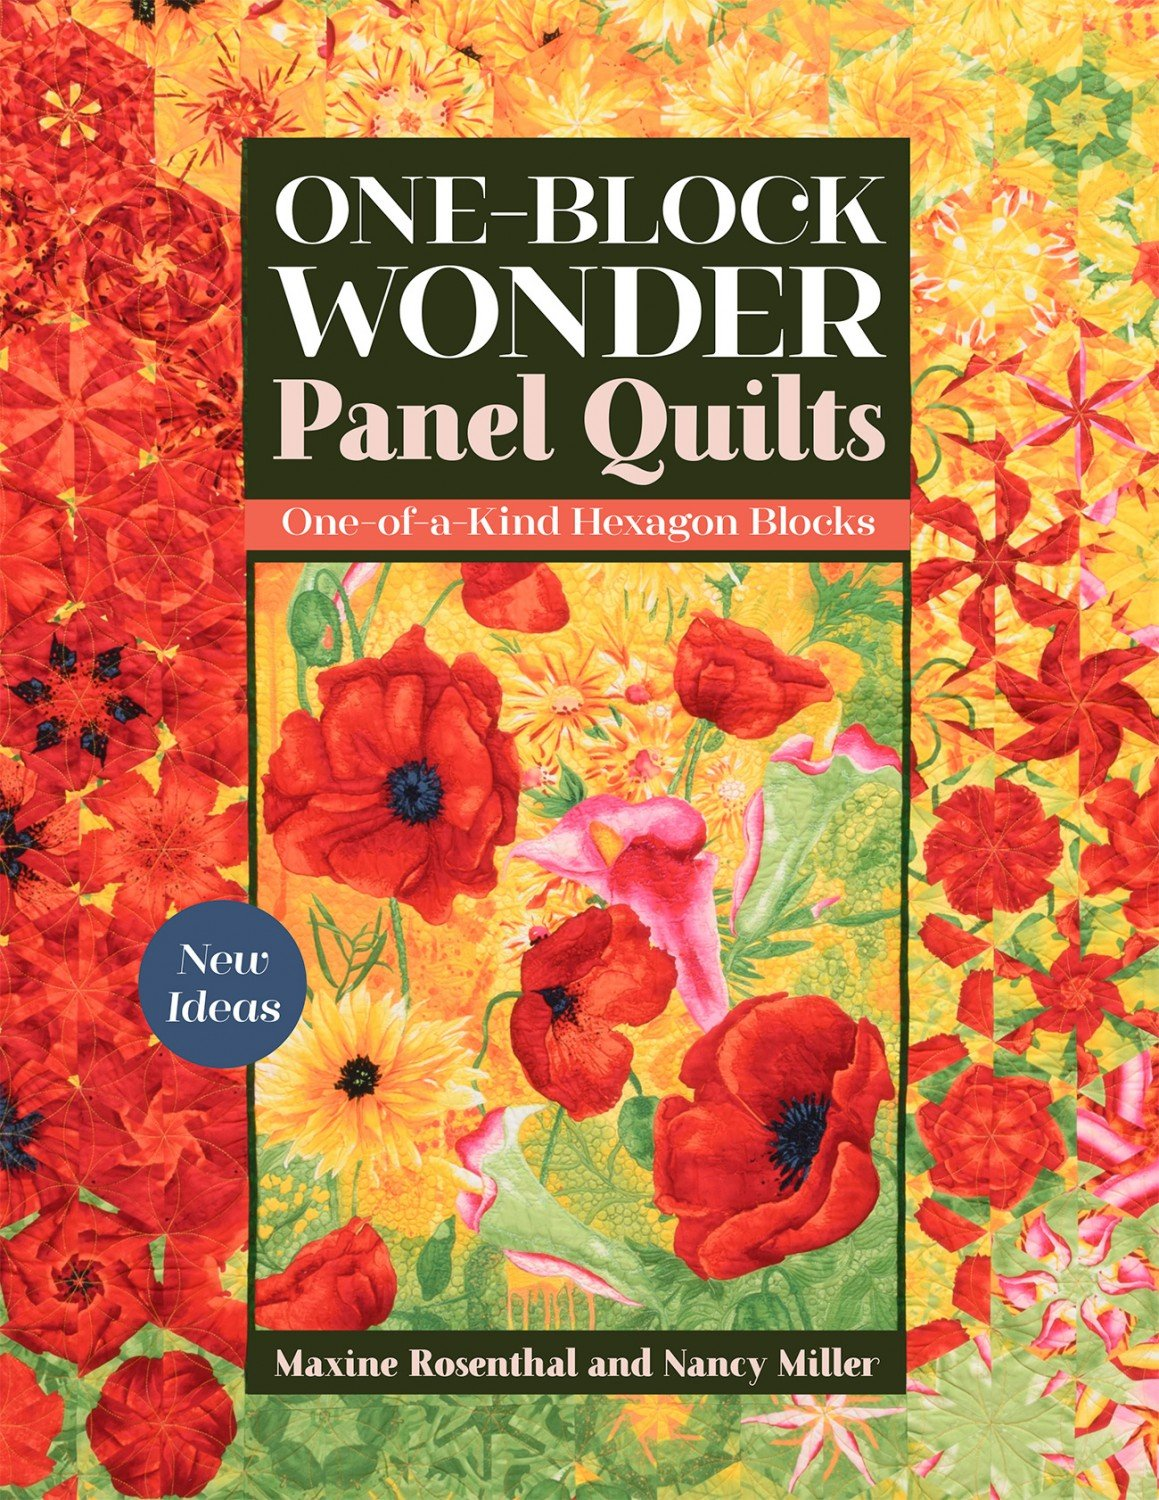 One-Block Wonder Panel Quilts  ~ RELEASE DATE MAR 25/21 ~